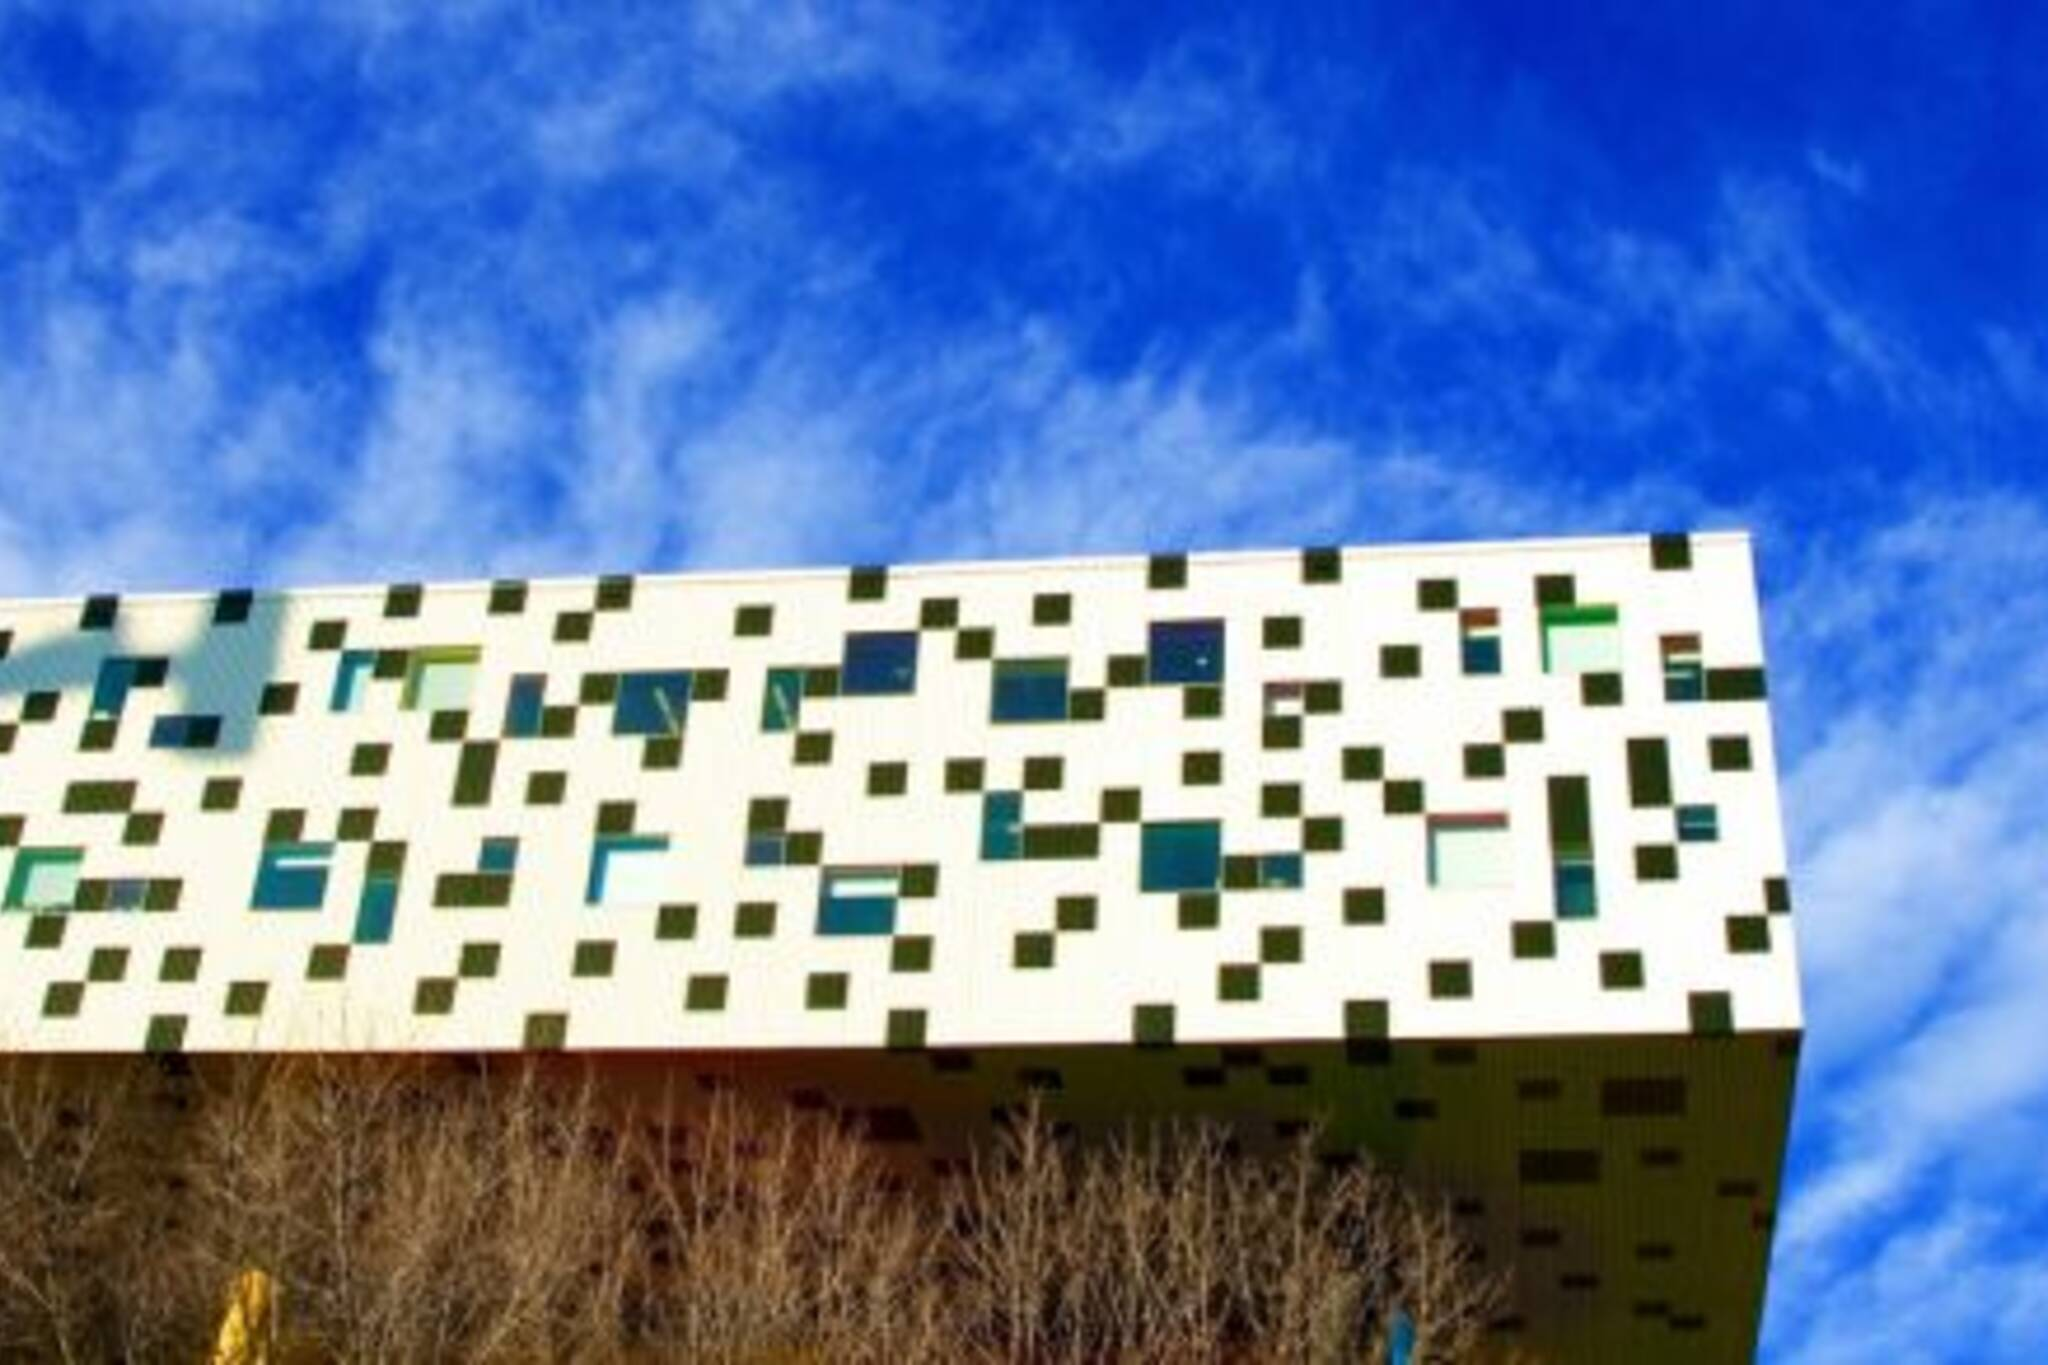 OCAD against a blue sky